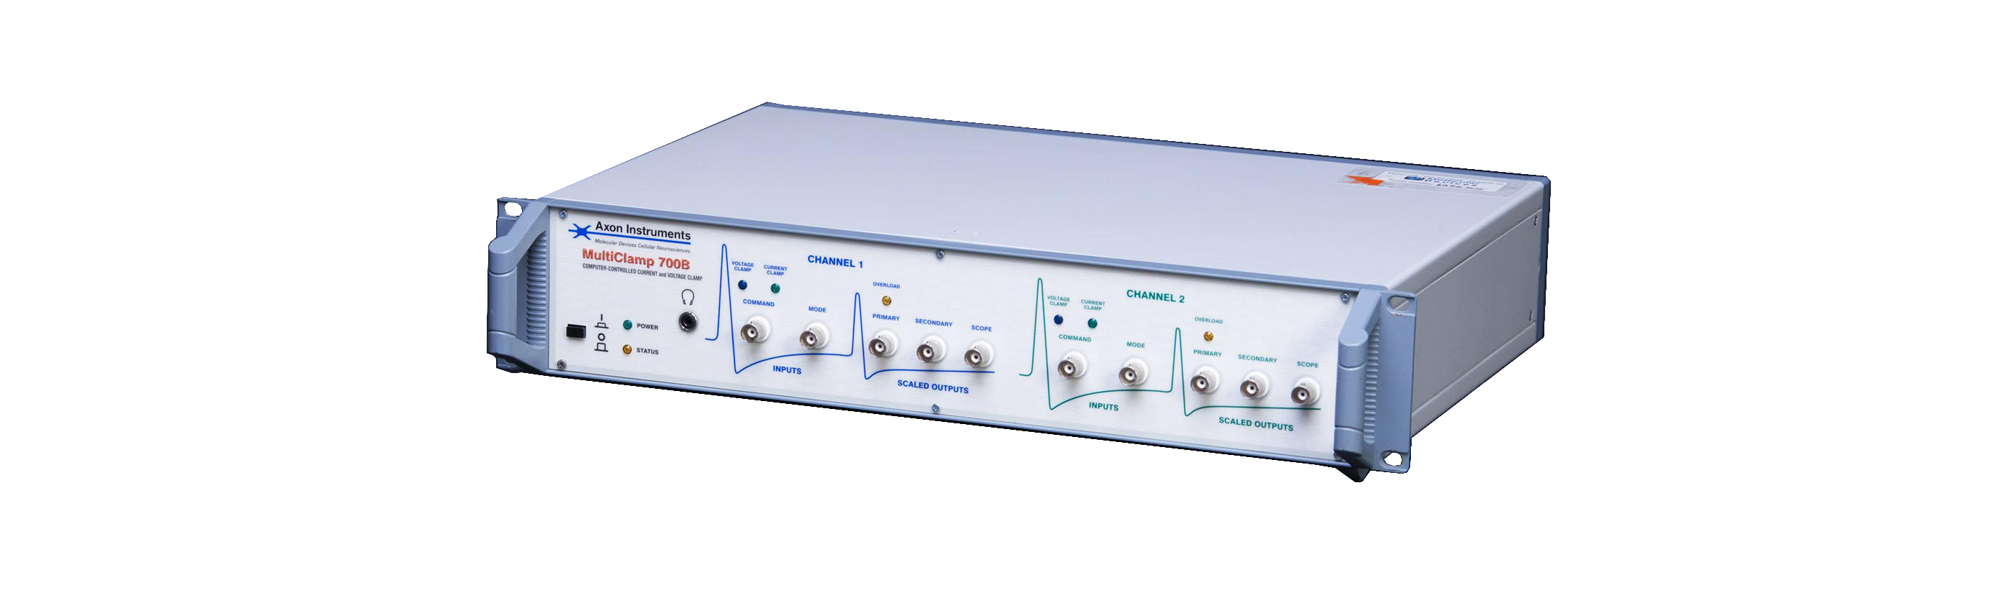 Molecular Devices MultiClamp 700B Amplifier